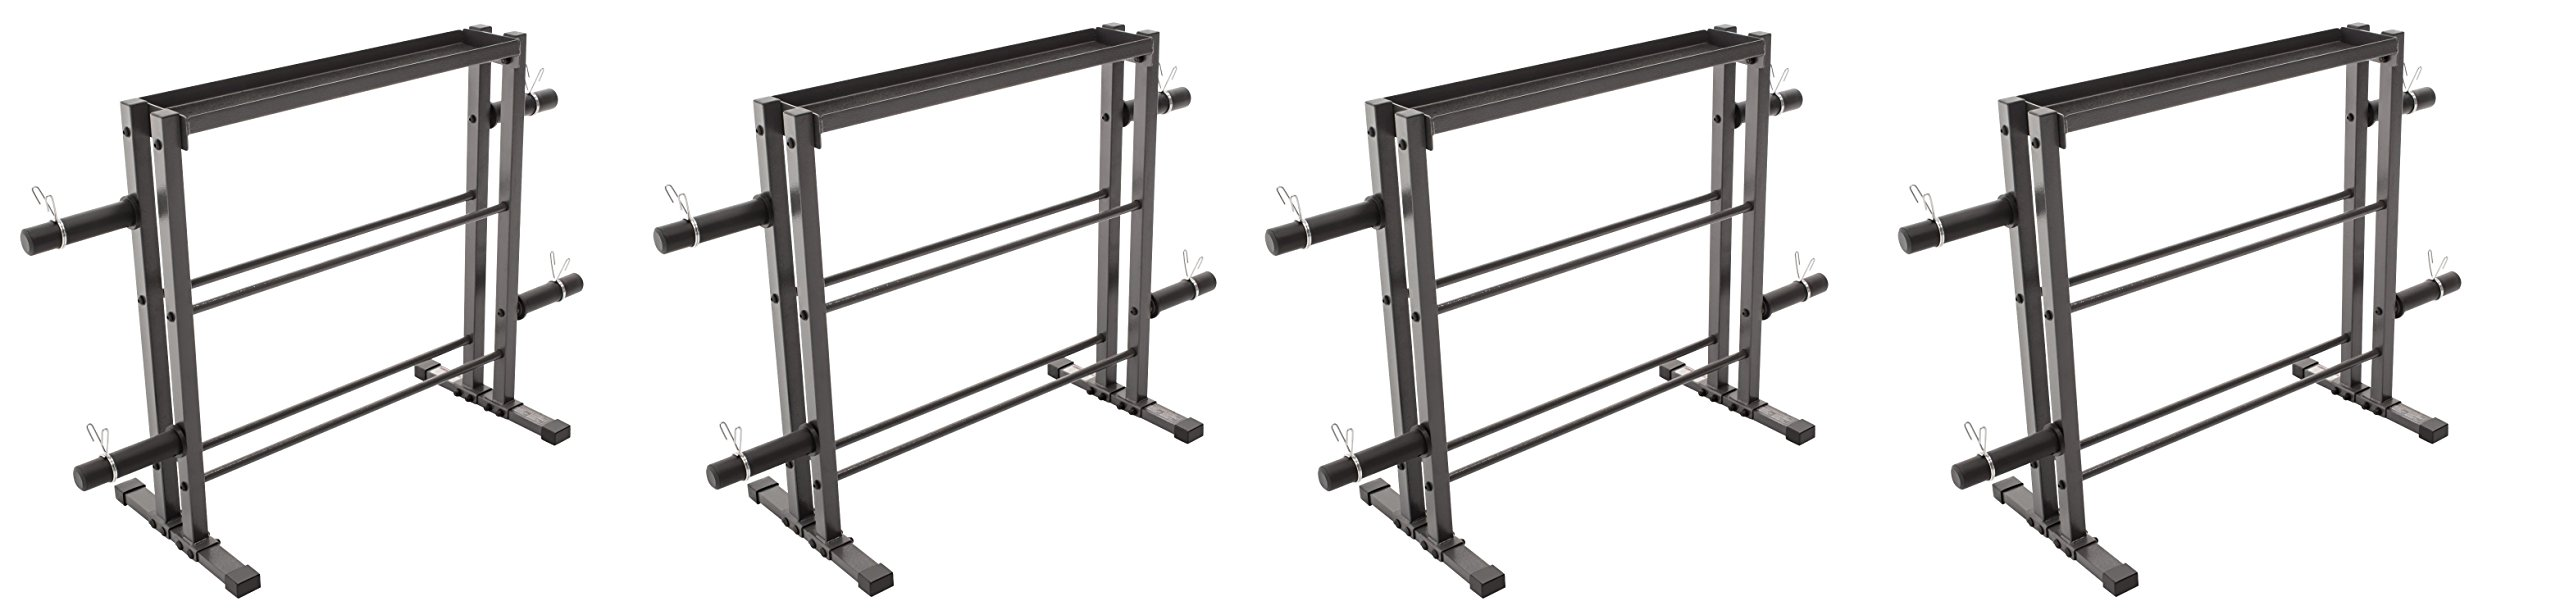 Marcy Combo Weights Storage Rack for Dumbbells, Kettlebells, and Weight Plates DBR-0117 (Pack of 4) by Marcy